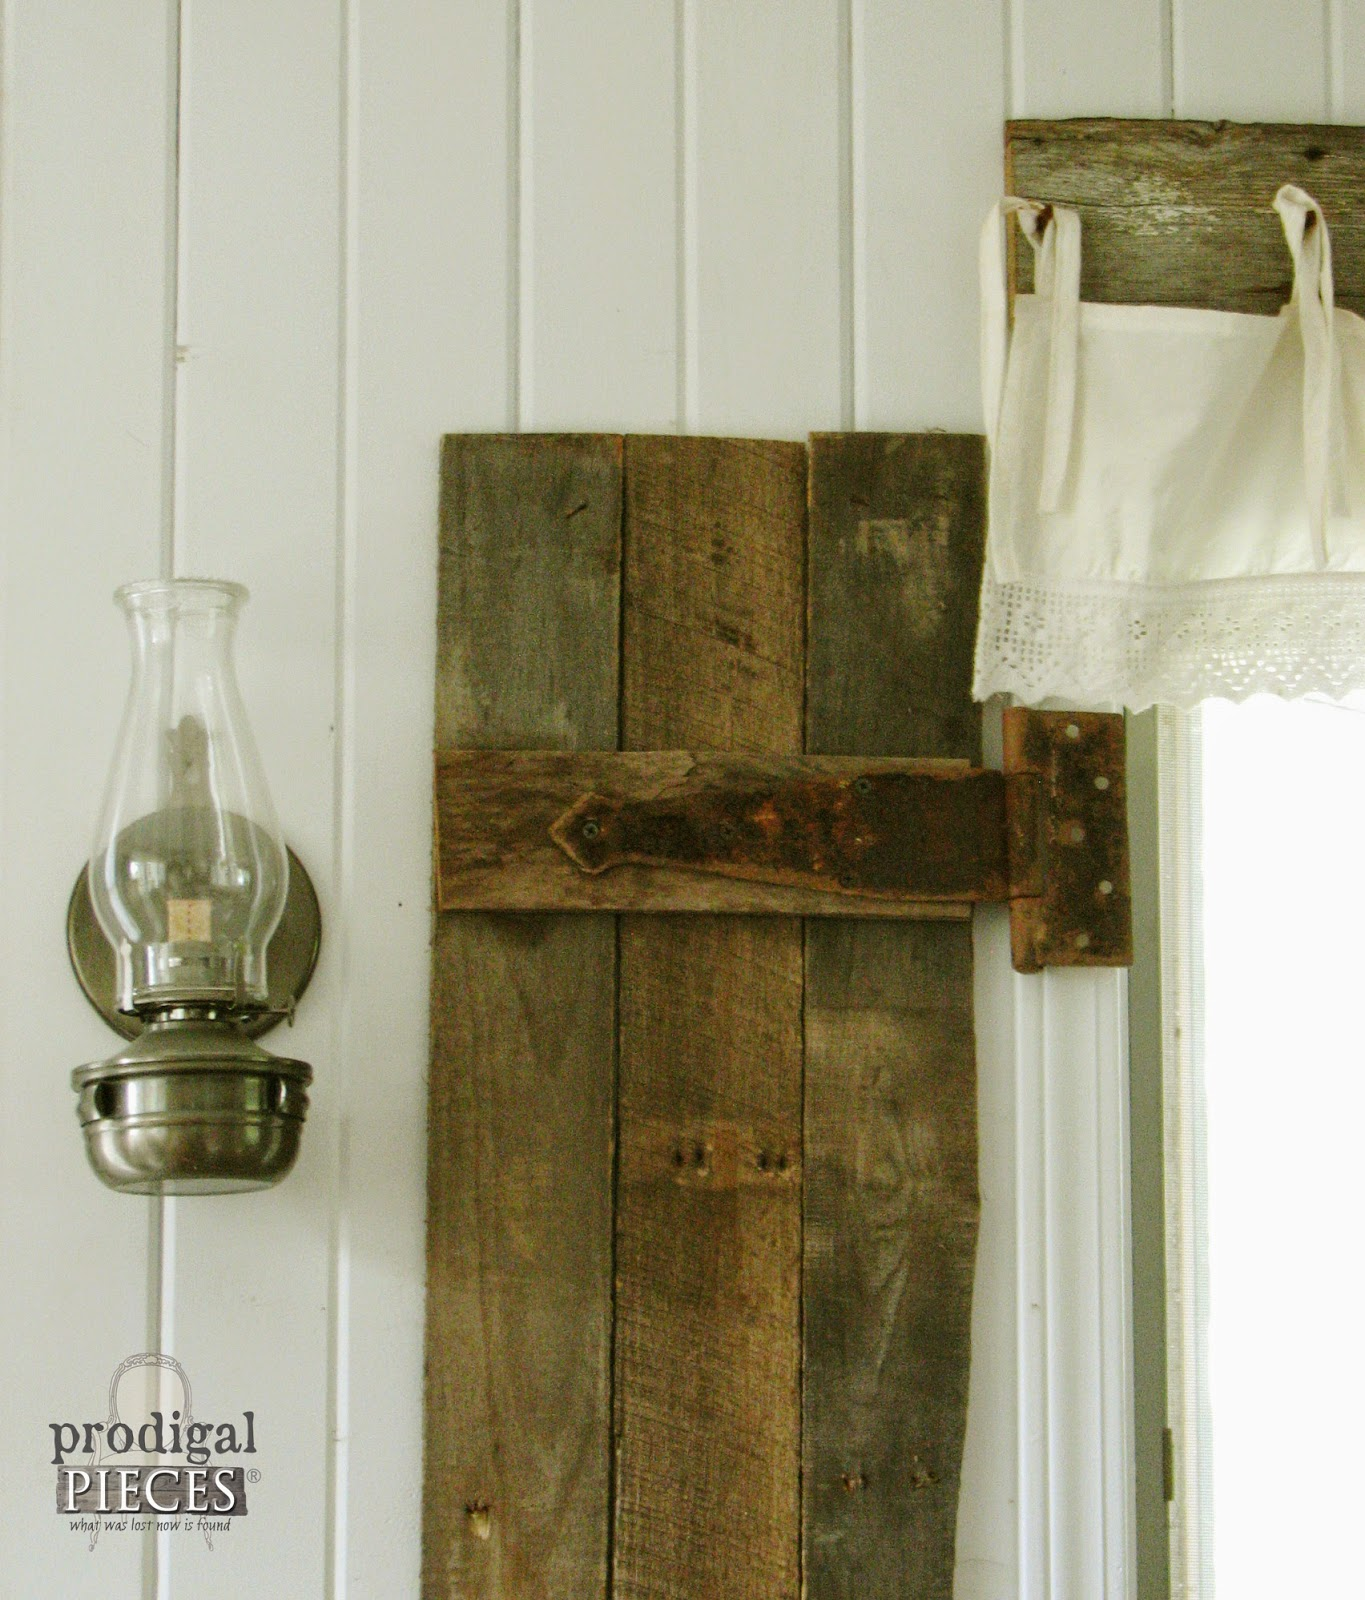 Diy barn wood shutters from pallets prodigal pieces for Barnwood pieces